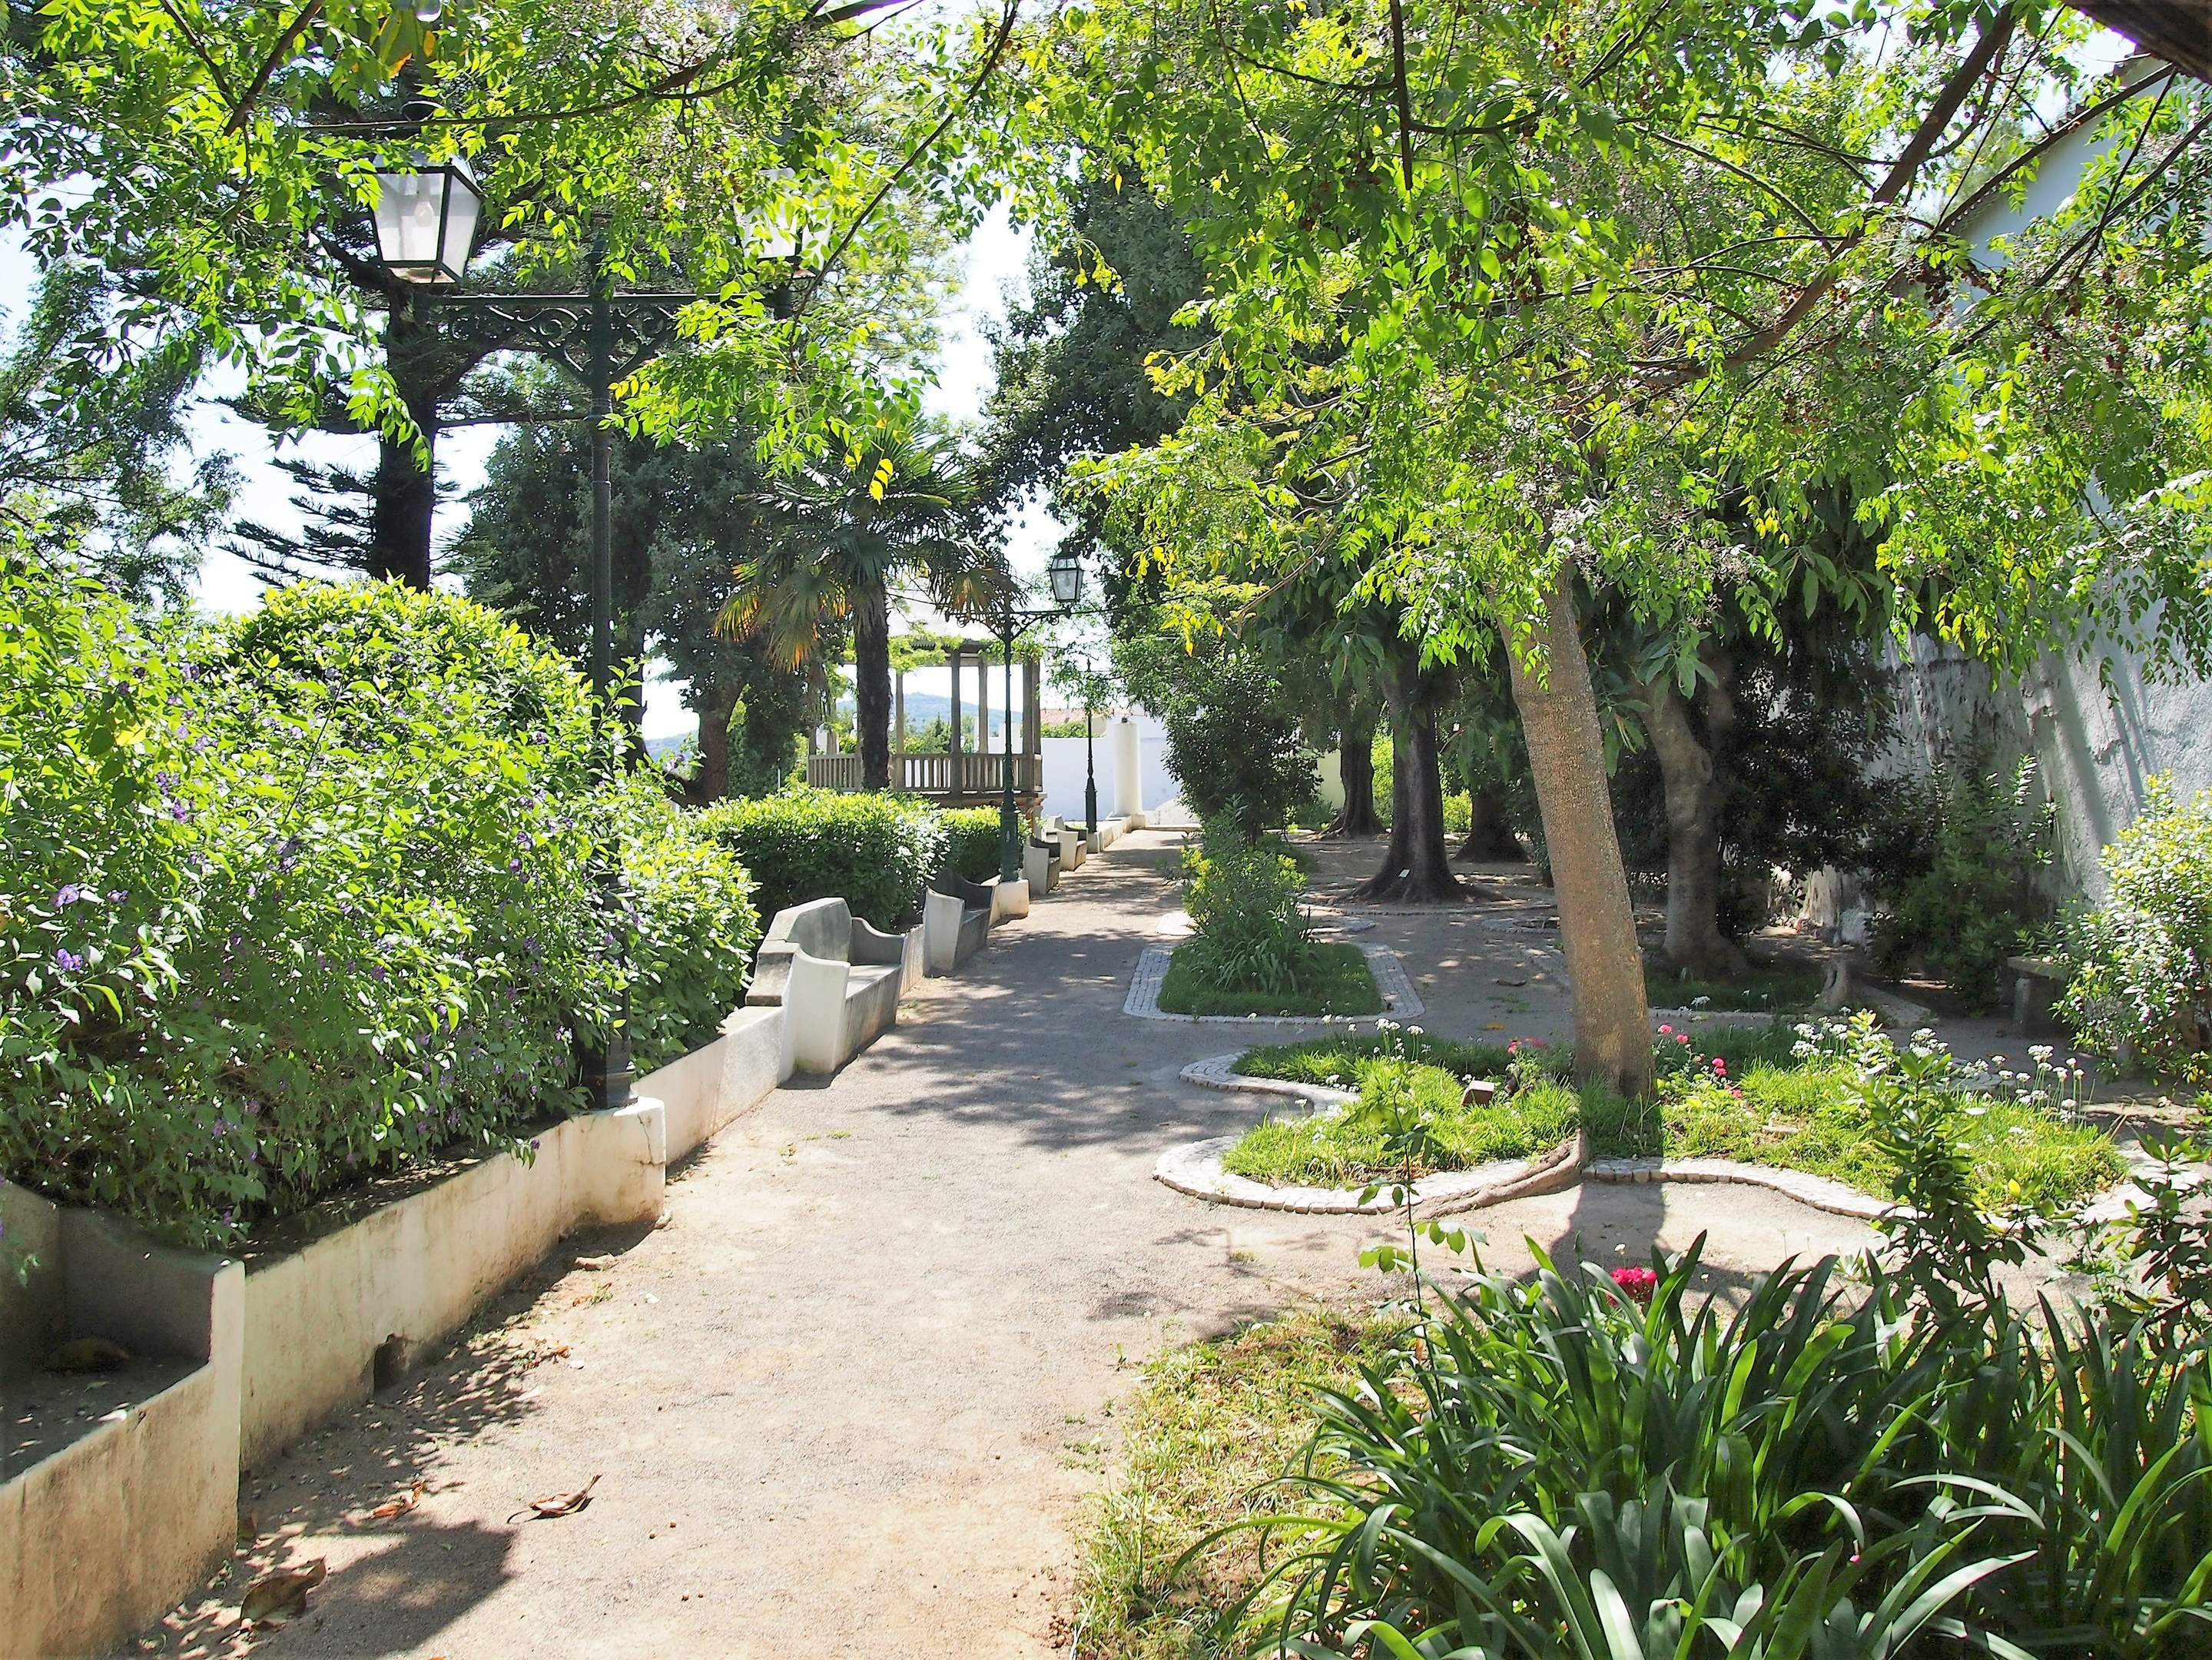 Jardim da Verbena in São Brás de Alportel. Formerly the gardens to an Episcopal Palace where the Bishops from the Algarve would reside in the summer months.